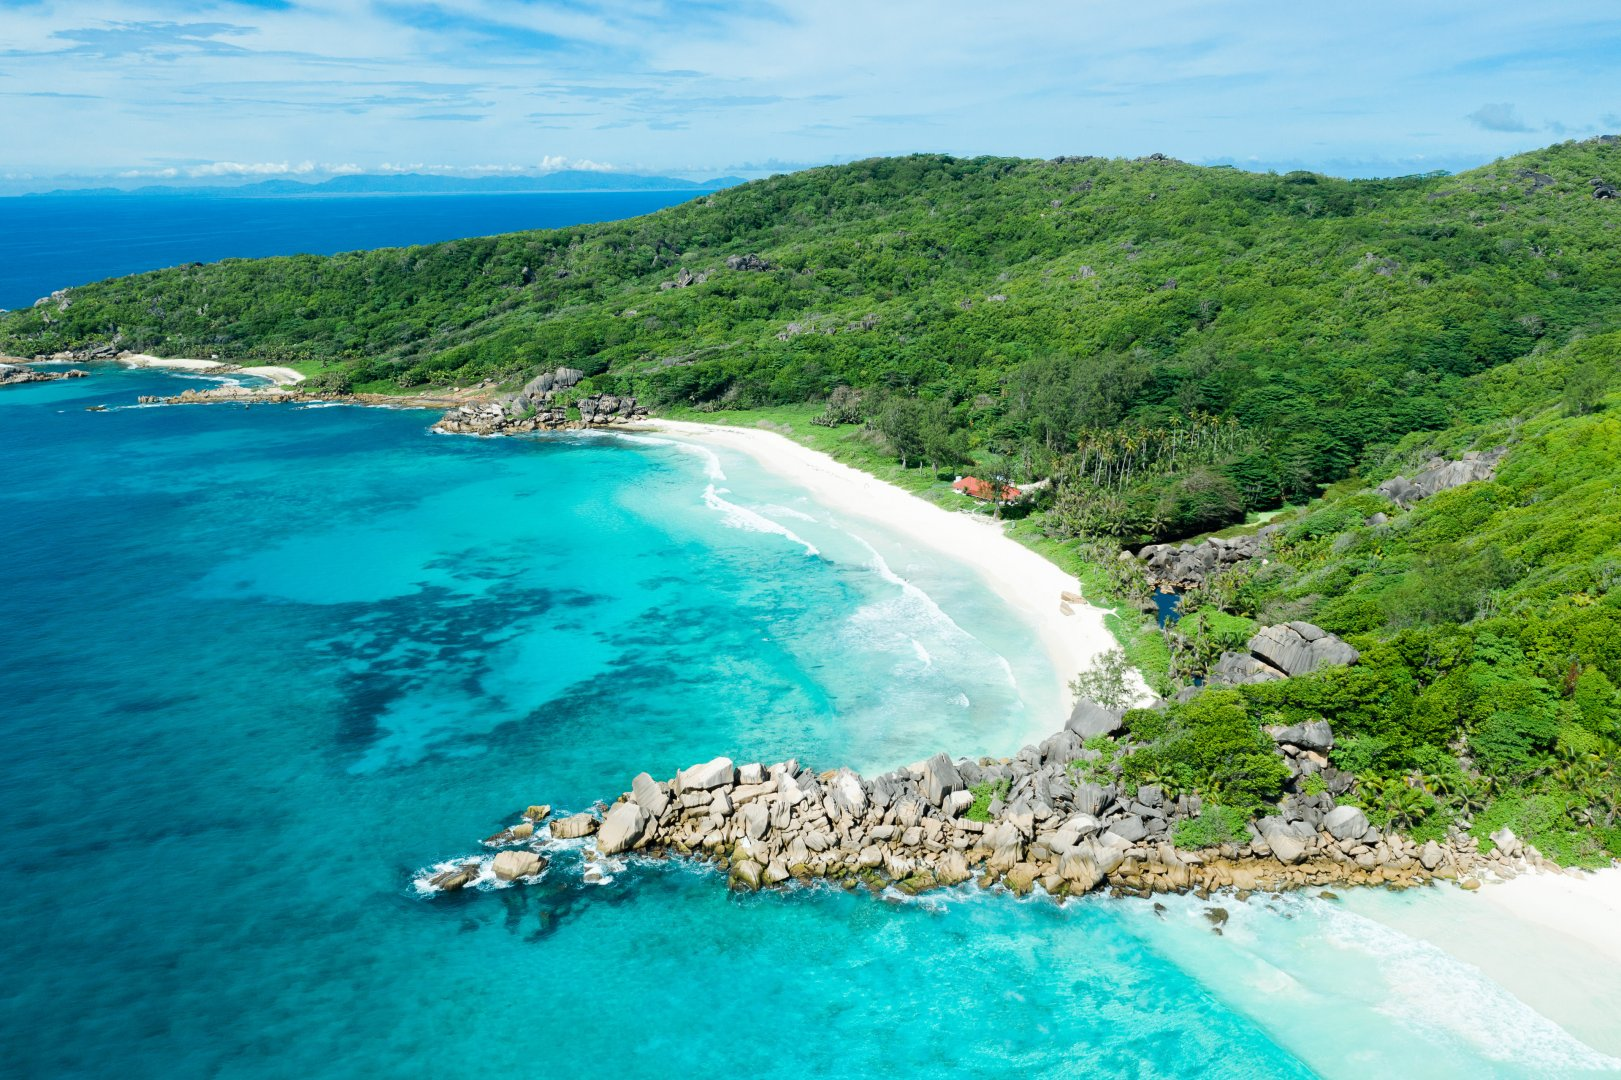 Body of water Coast Coastal and oceanic landforms Sea Promontory Bight Natural landscape Bay Shore Headland Ocean Tropics Inlet Beach Water resources Cape Cove Caribbean Sky Peninsula Aerial photography Vacation Tourism Lagoon Landscape Island Cay Tourist attraction Klippe